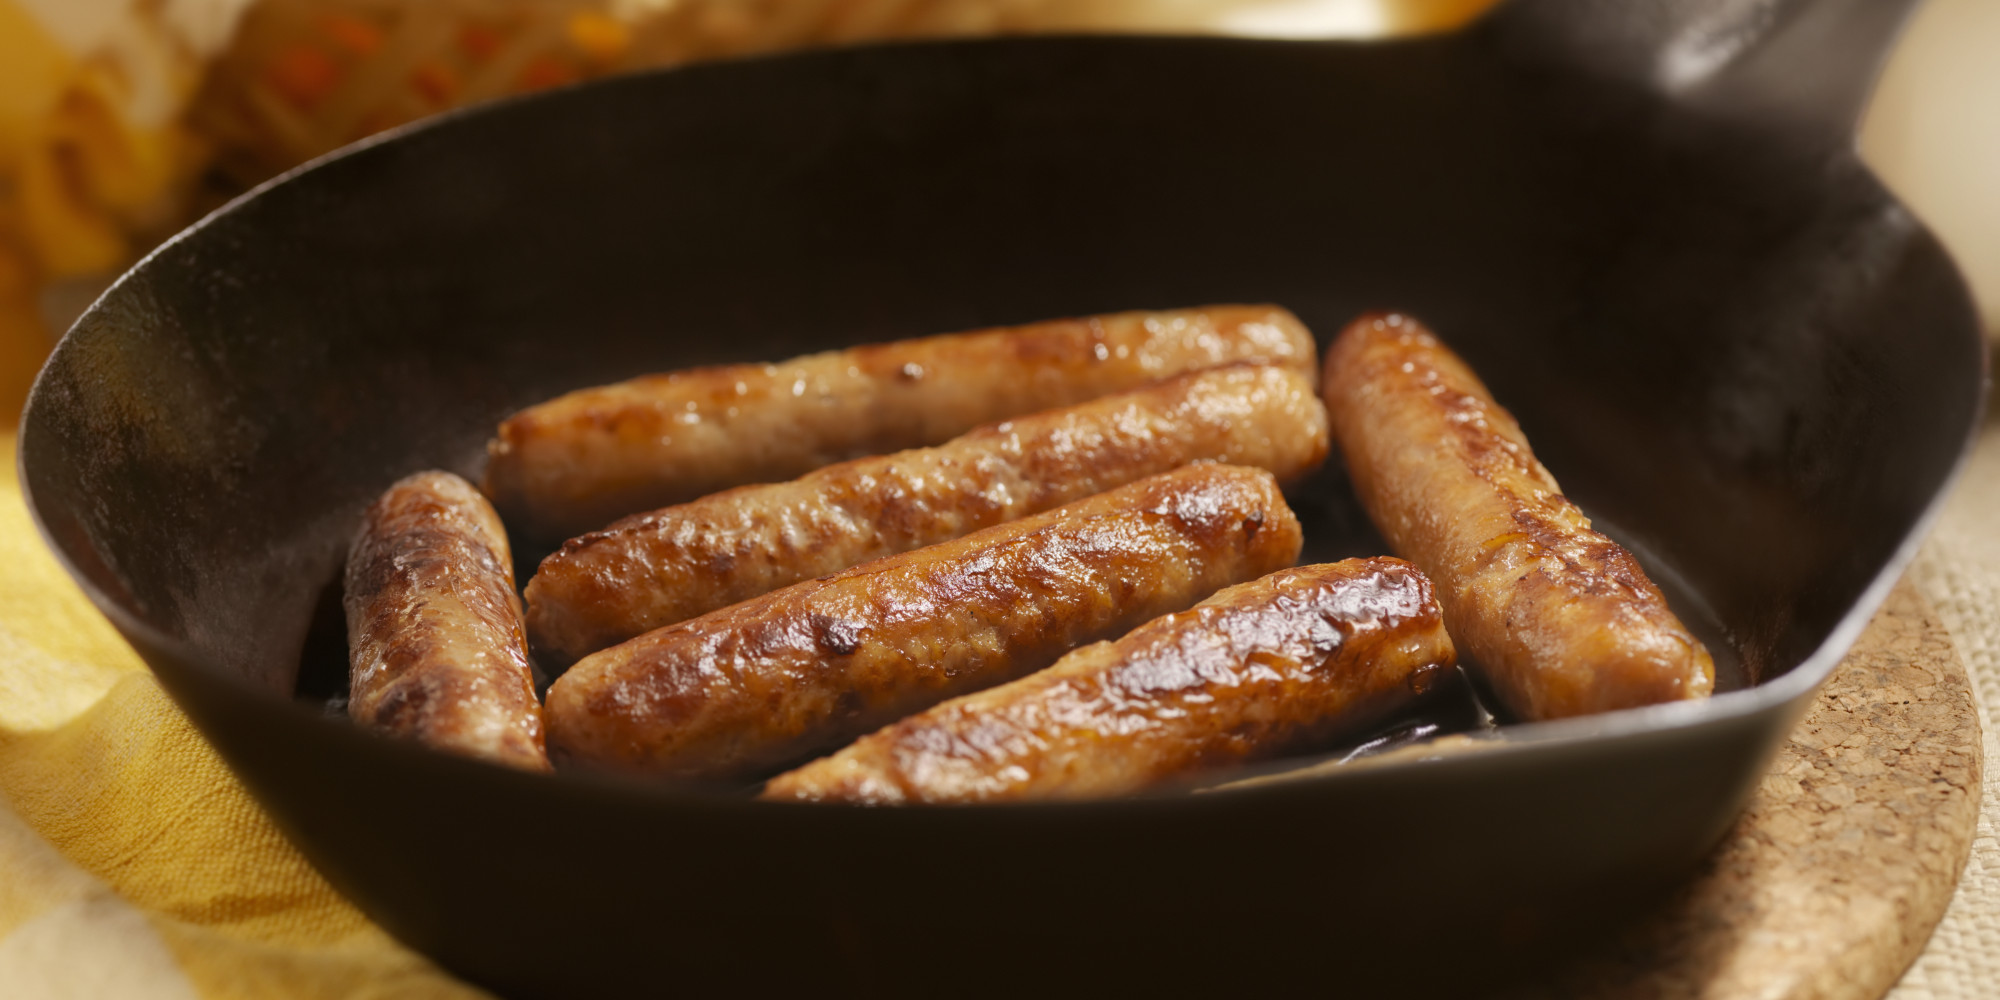 The Ultimate Breakfast Sausage Taste Test | The Huffington Post